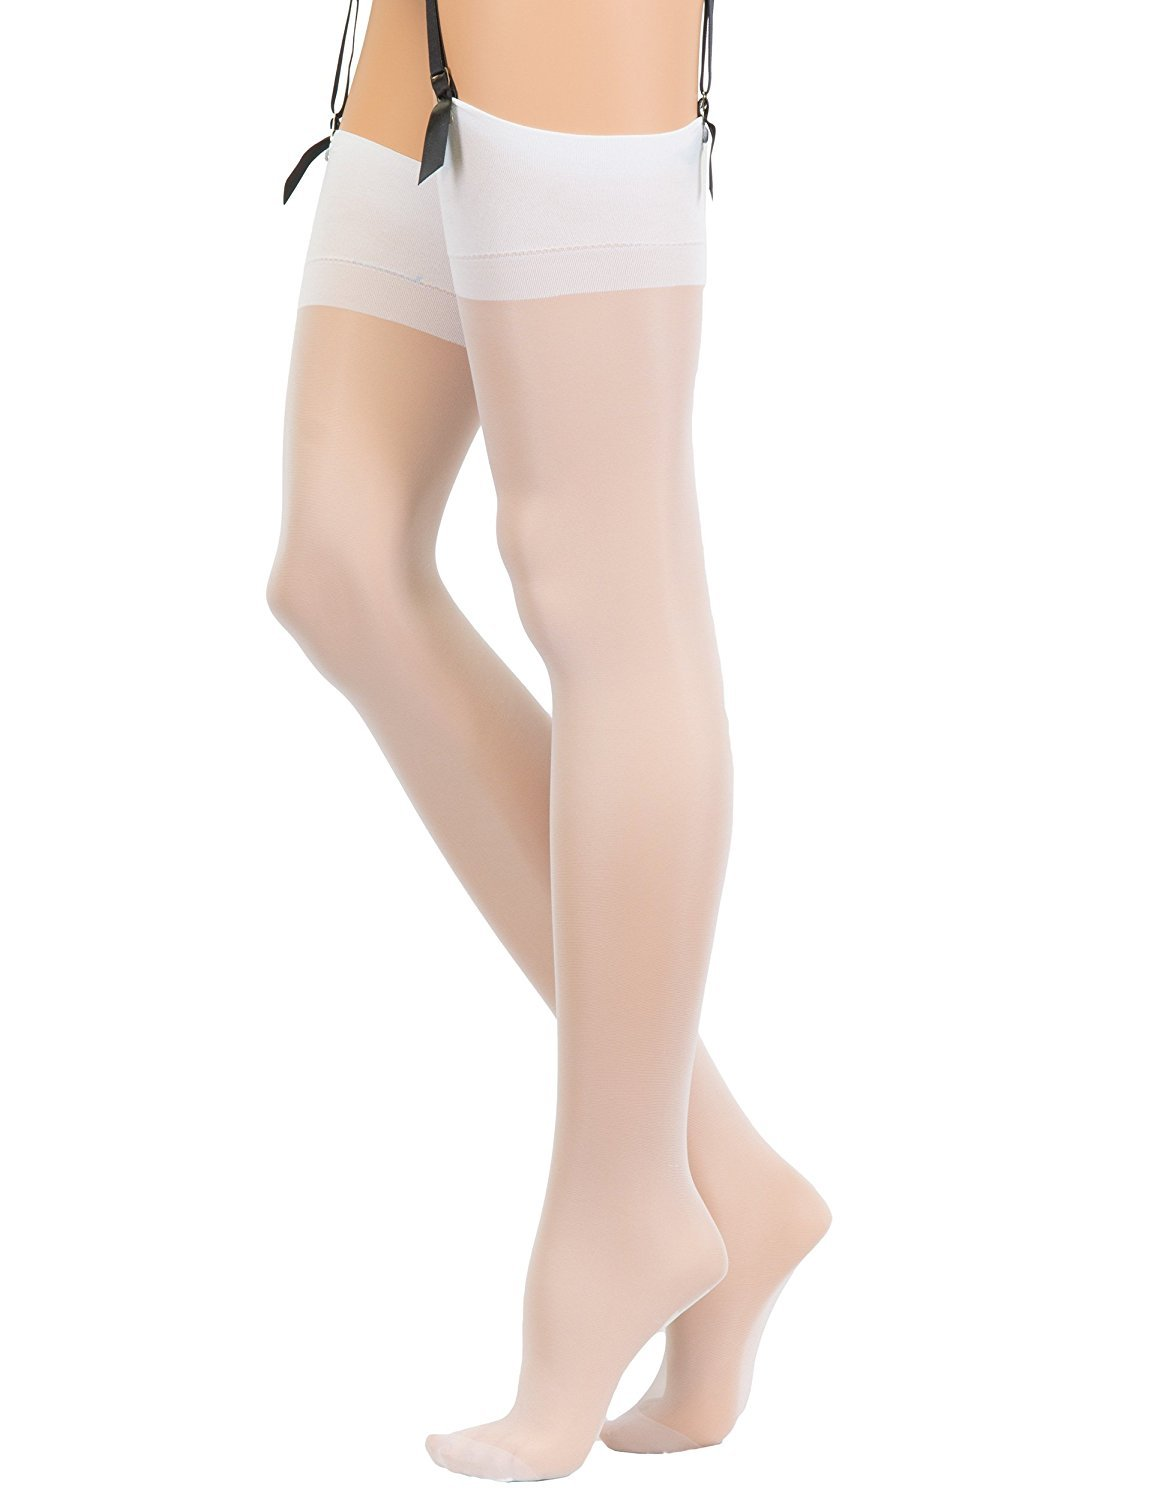 Veneziana Thigh High Stockings for Garter and Suspender Belts Sheer (White, X-Large)